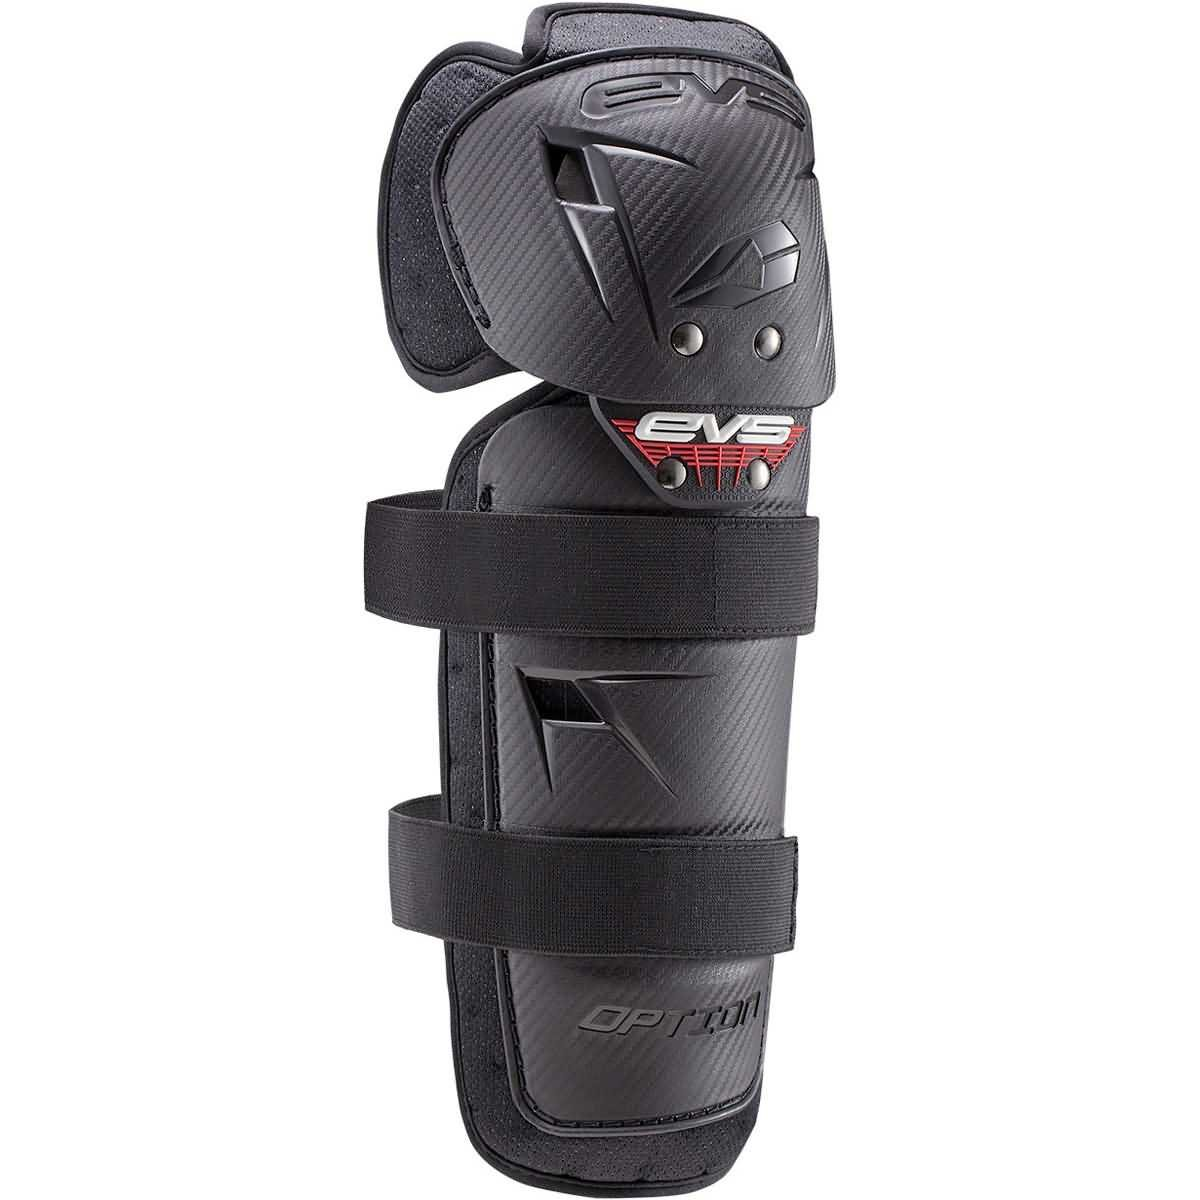 EVS 2016 Option Adult Knee Guard Off-Road Motorcycle Body Armor - Black/One Size by EVS Sports (Image #1)